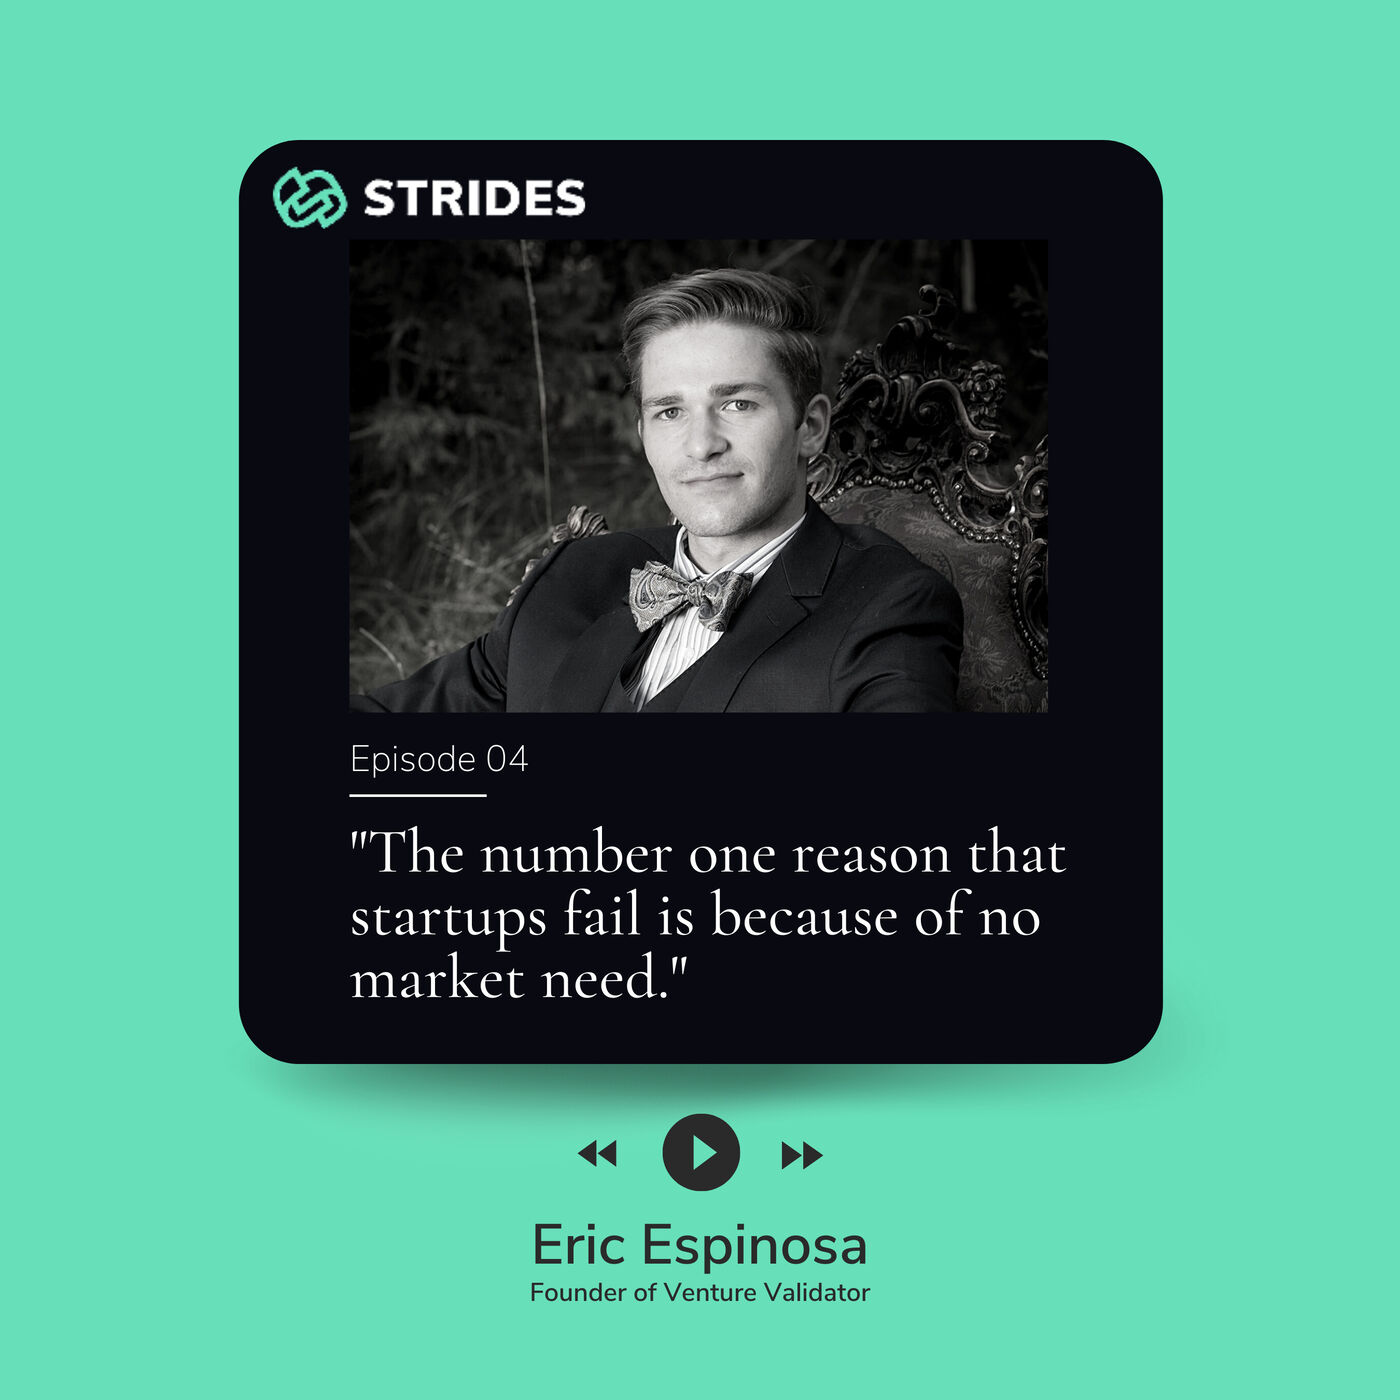 Finding Product Market Fit with Eric Espinosa (Venture Validator)